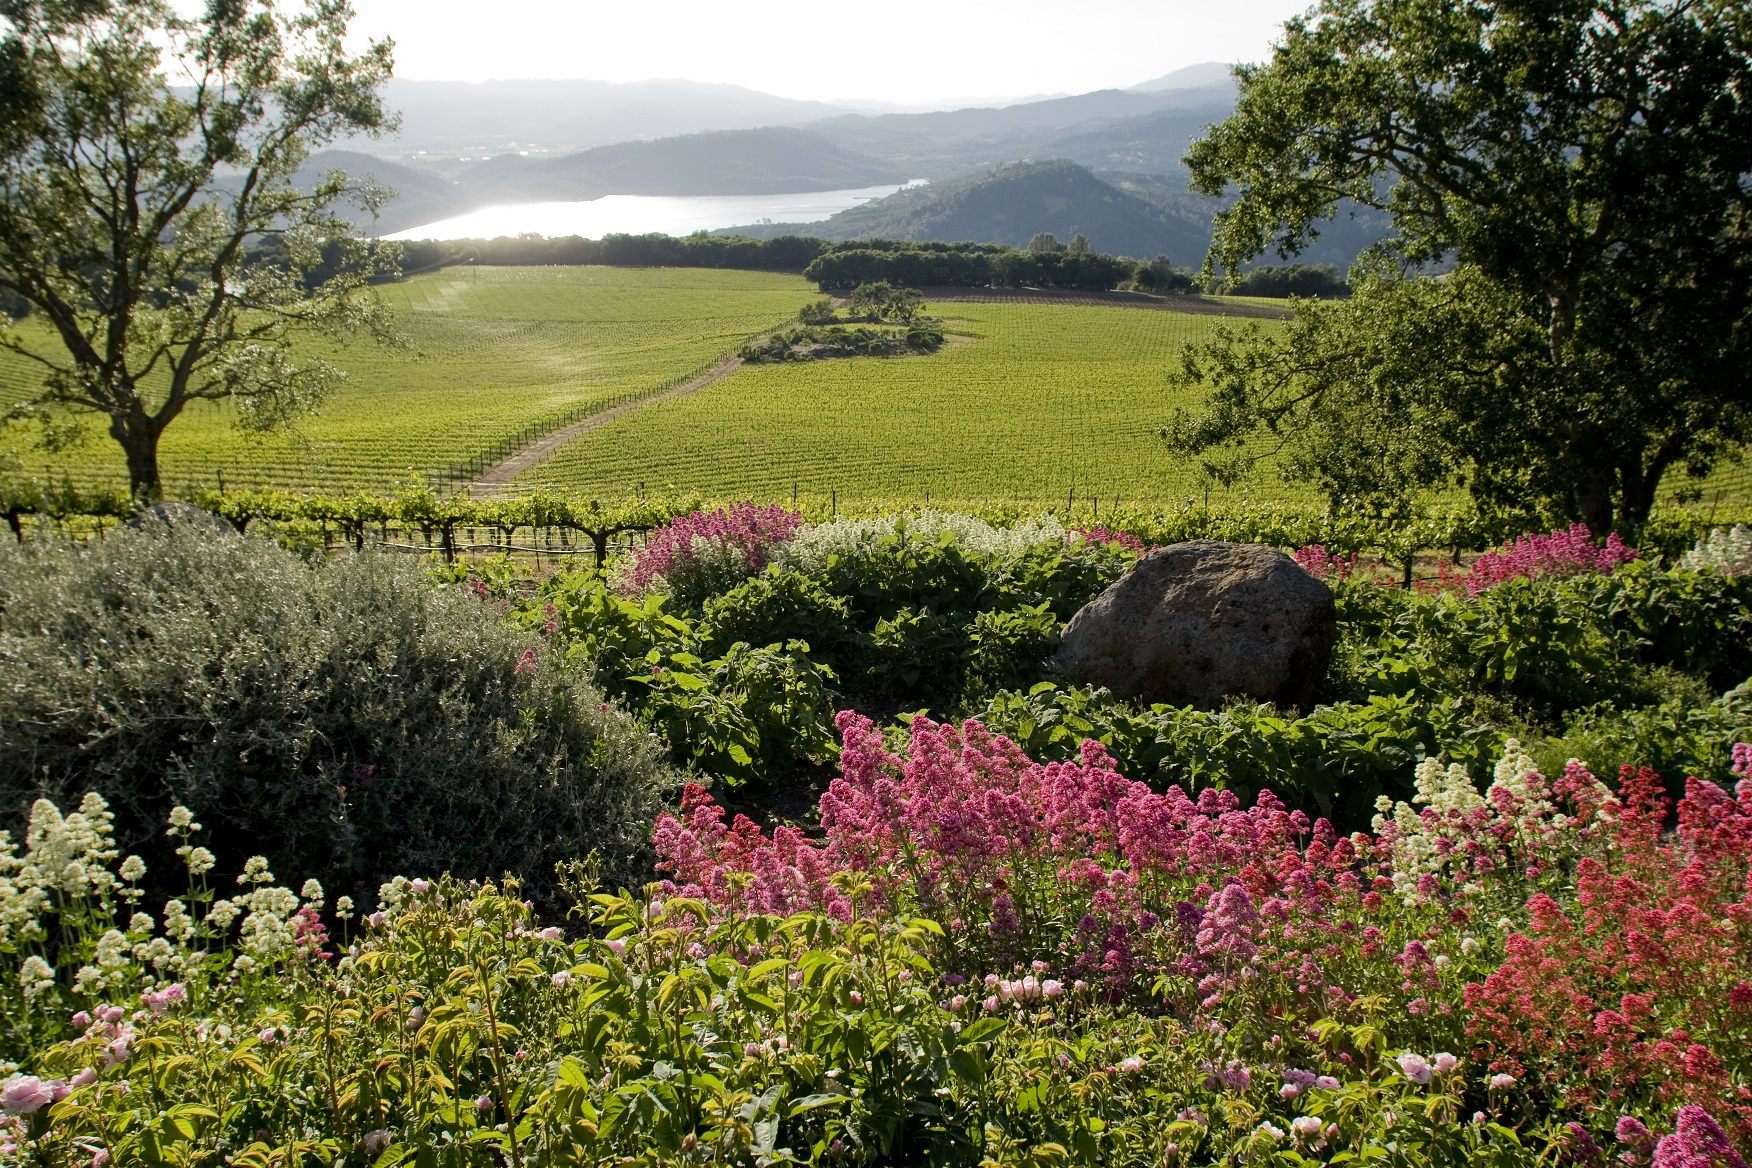 Chappellet's vineyard on Pritchard Hill from the midst of Molly Chappellet's garden! Photo Courtesy of Chappellet